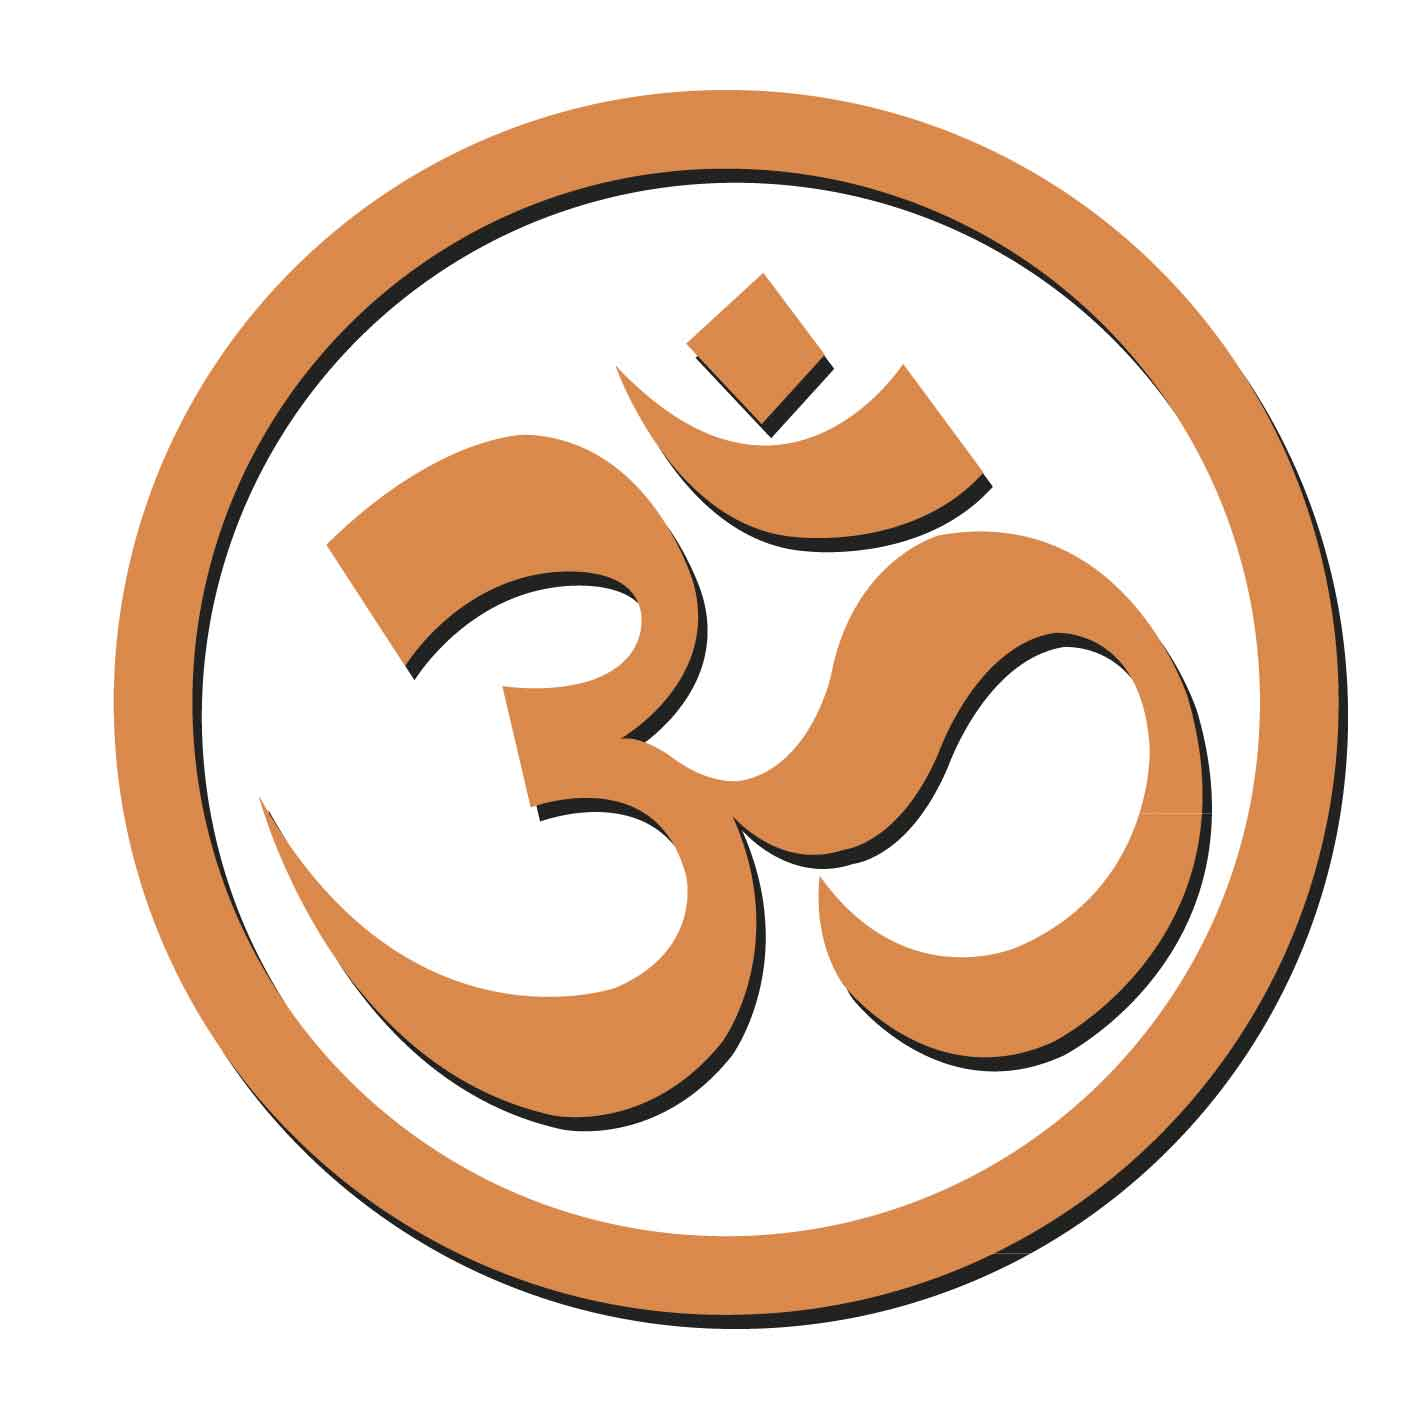 Om is a syllable, which applies to Hindus, Jains and Buddhists as sacred.